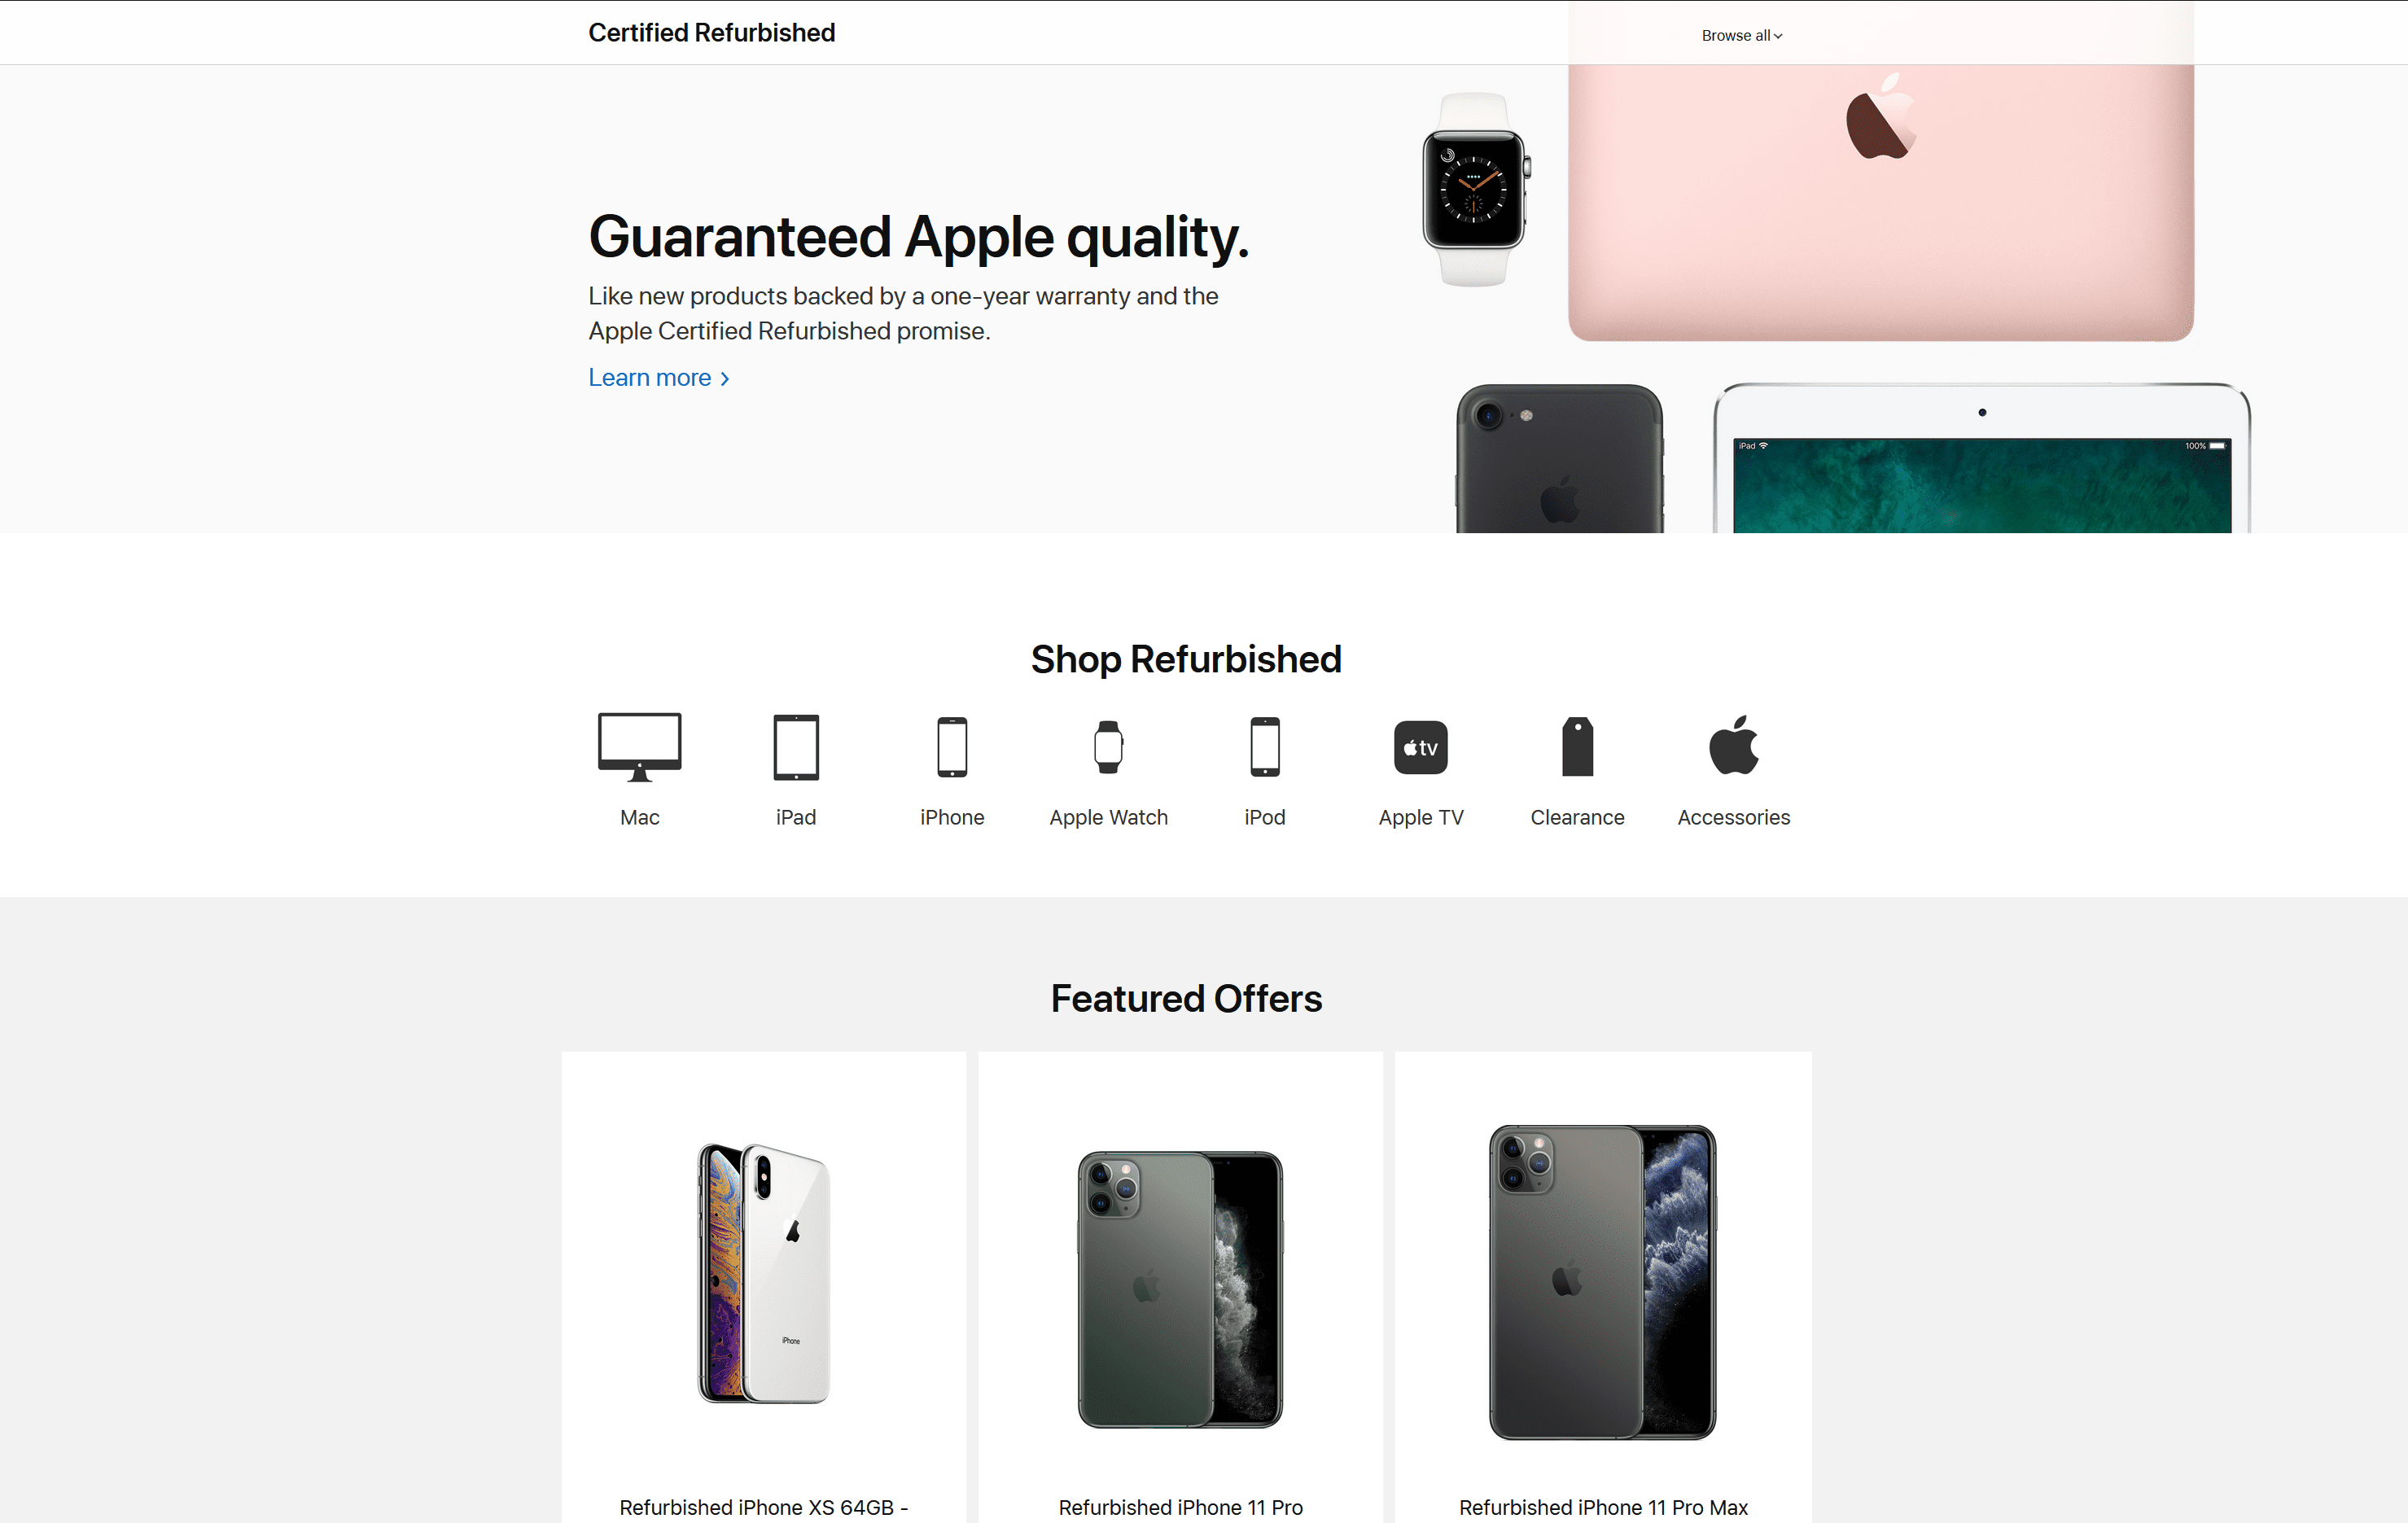 Apple's own certified refurbished page